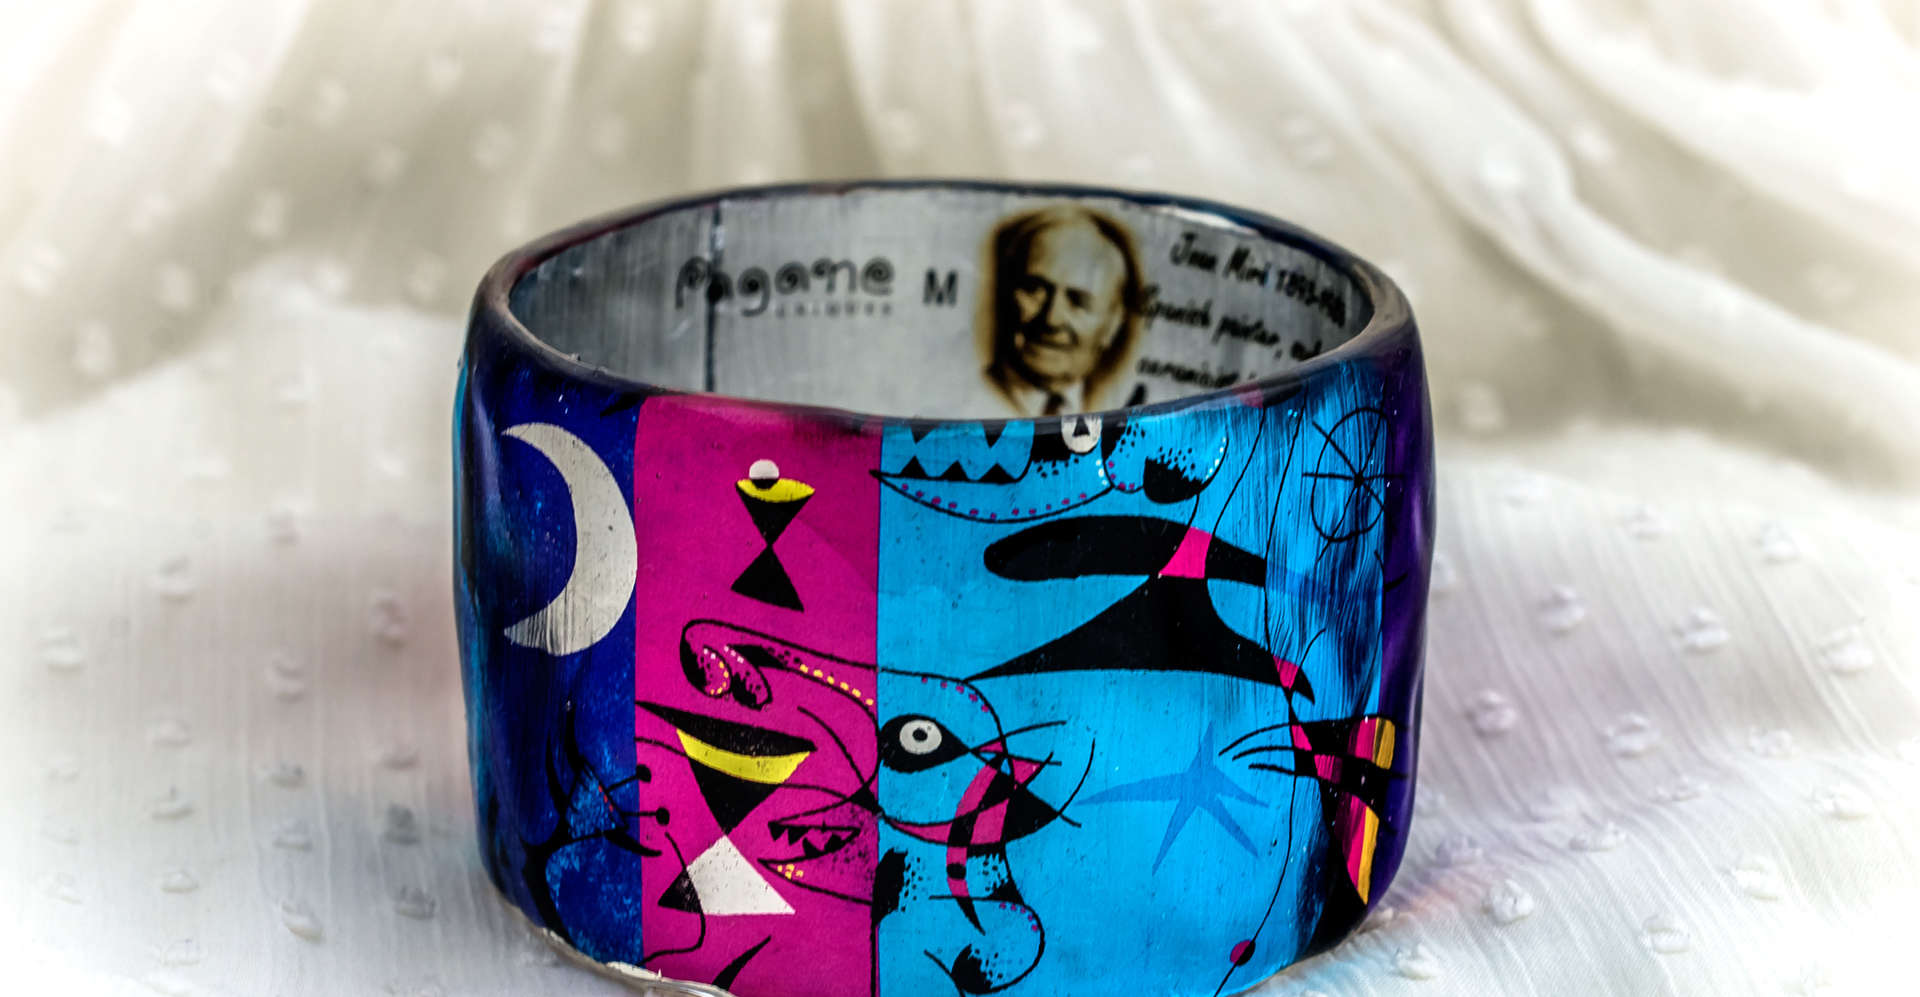 High Resin Bangle By PAGANE uniques (15)